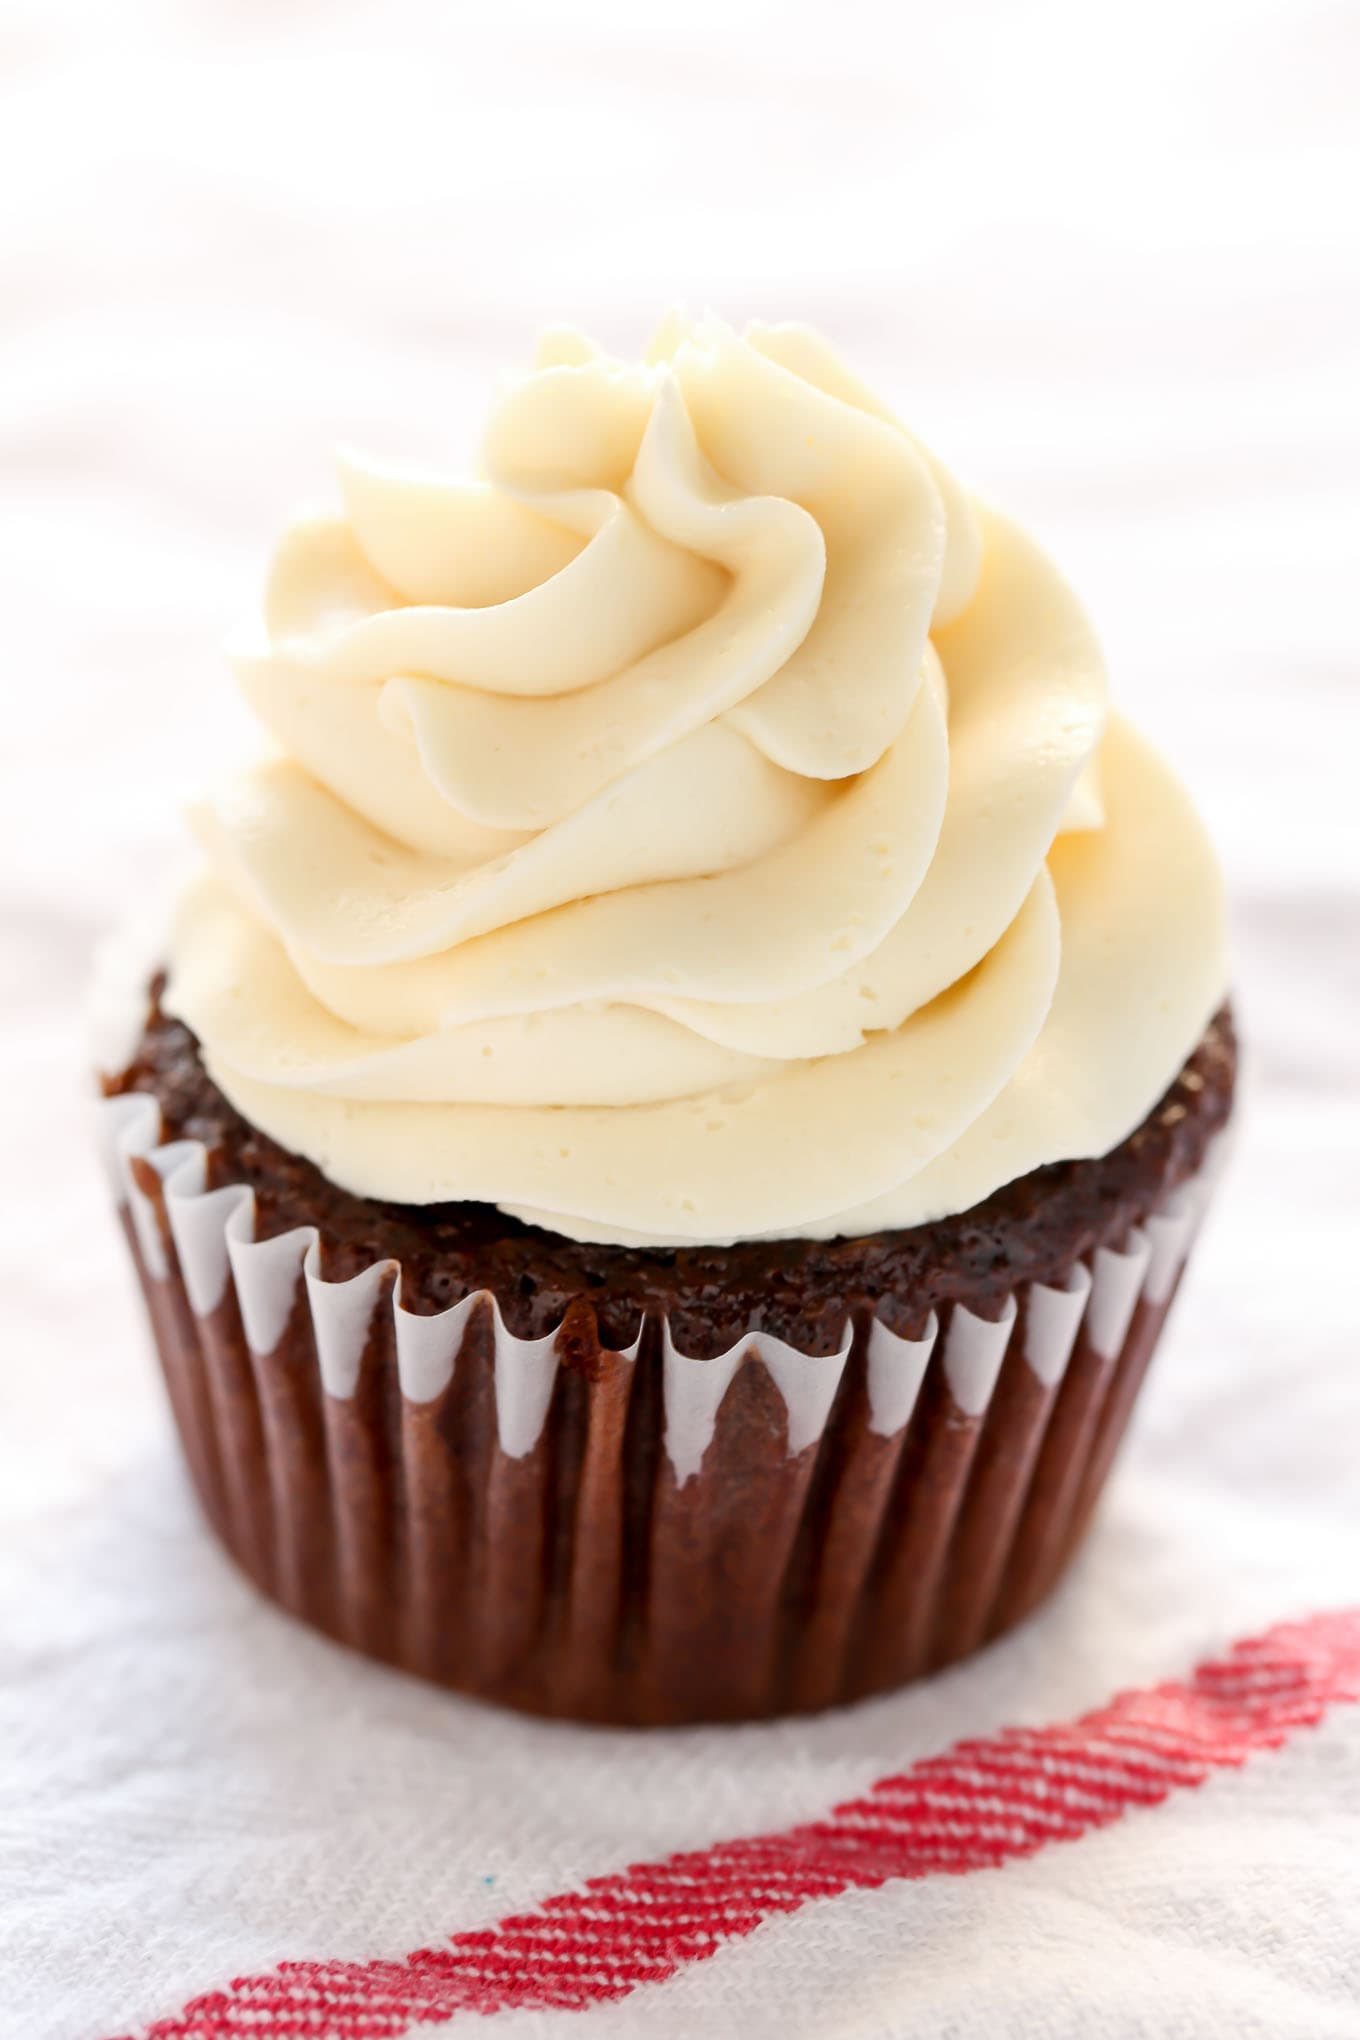 How to make chocolate buttercream without icing sugar